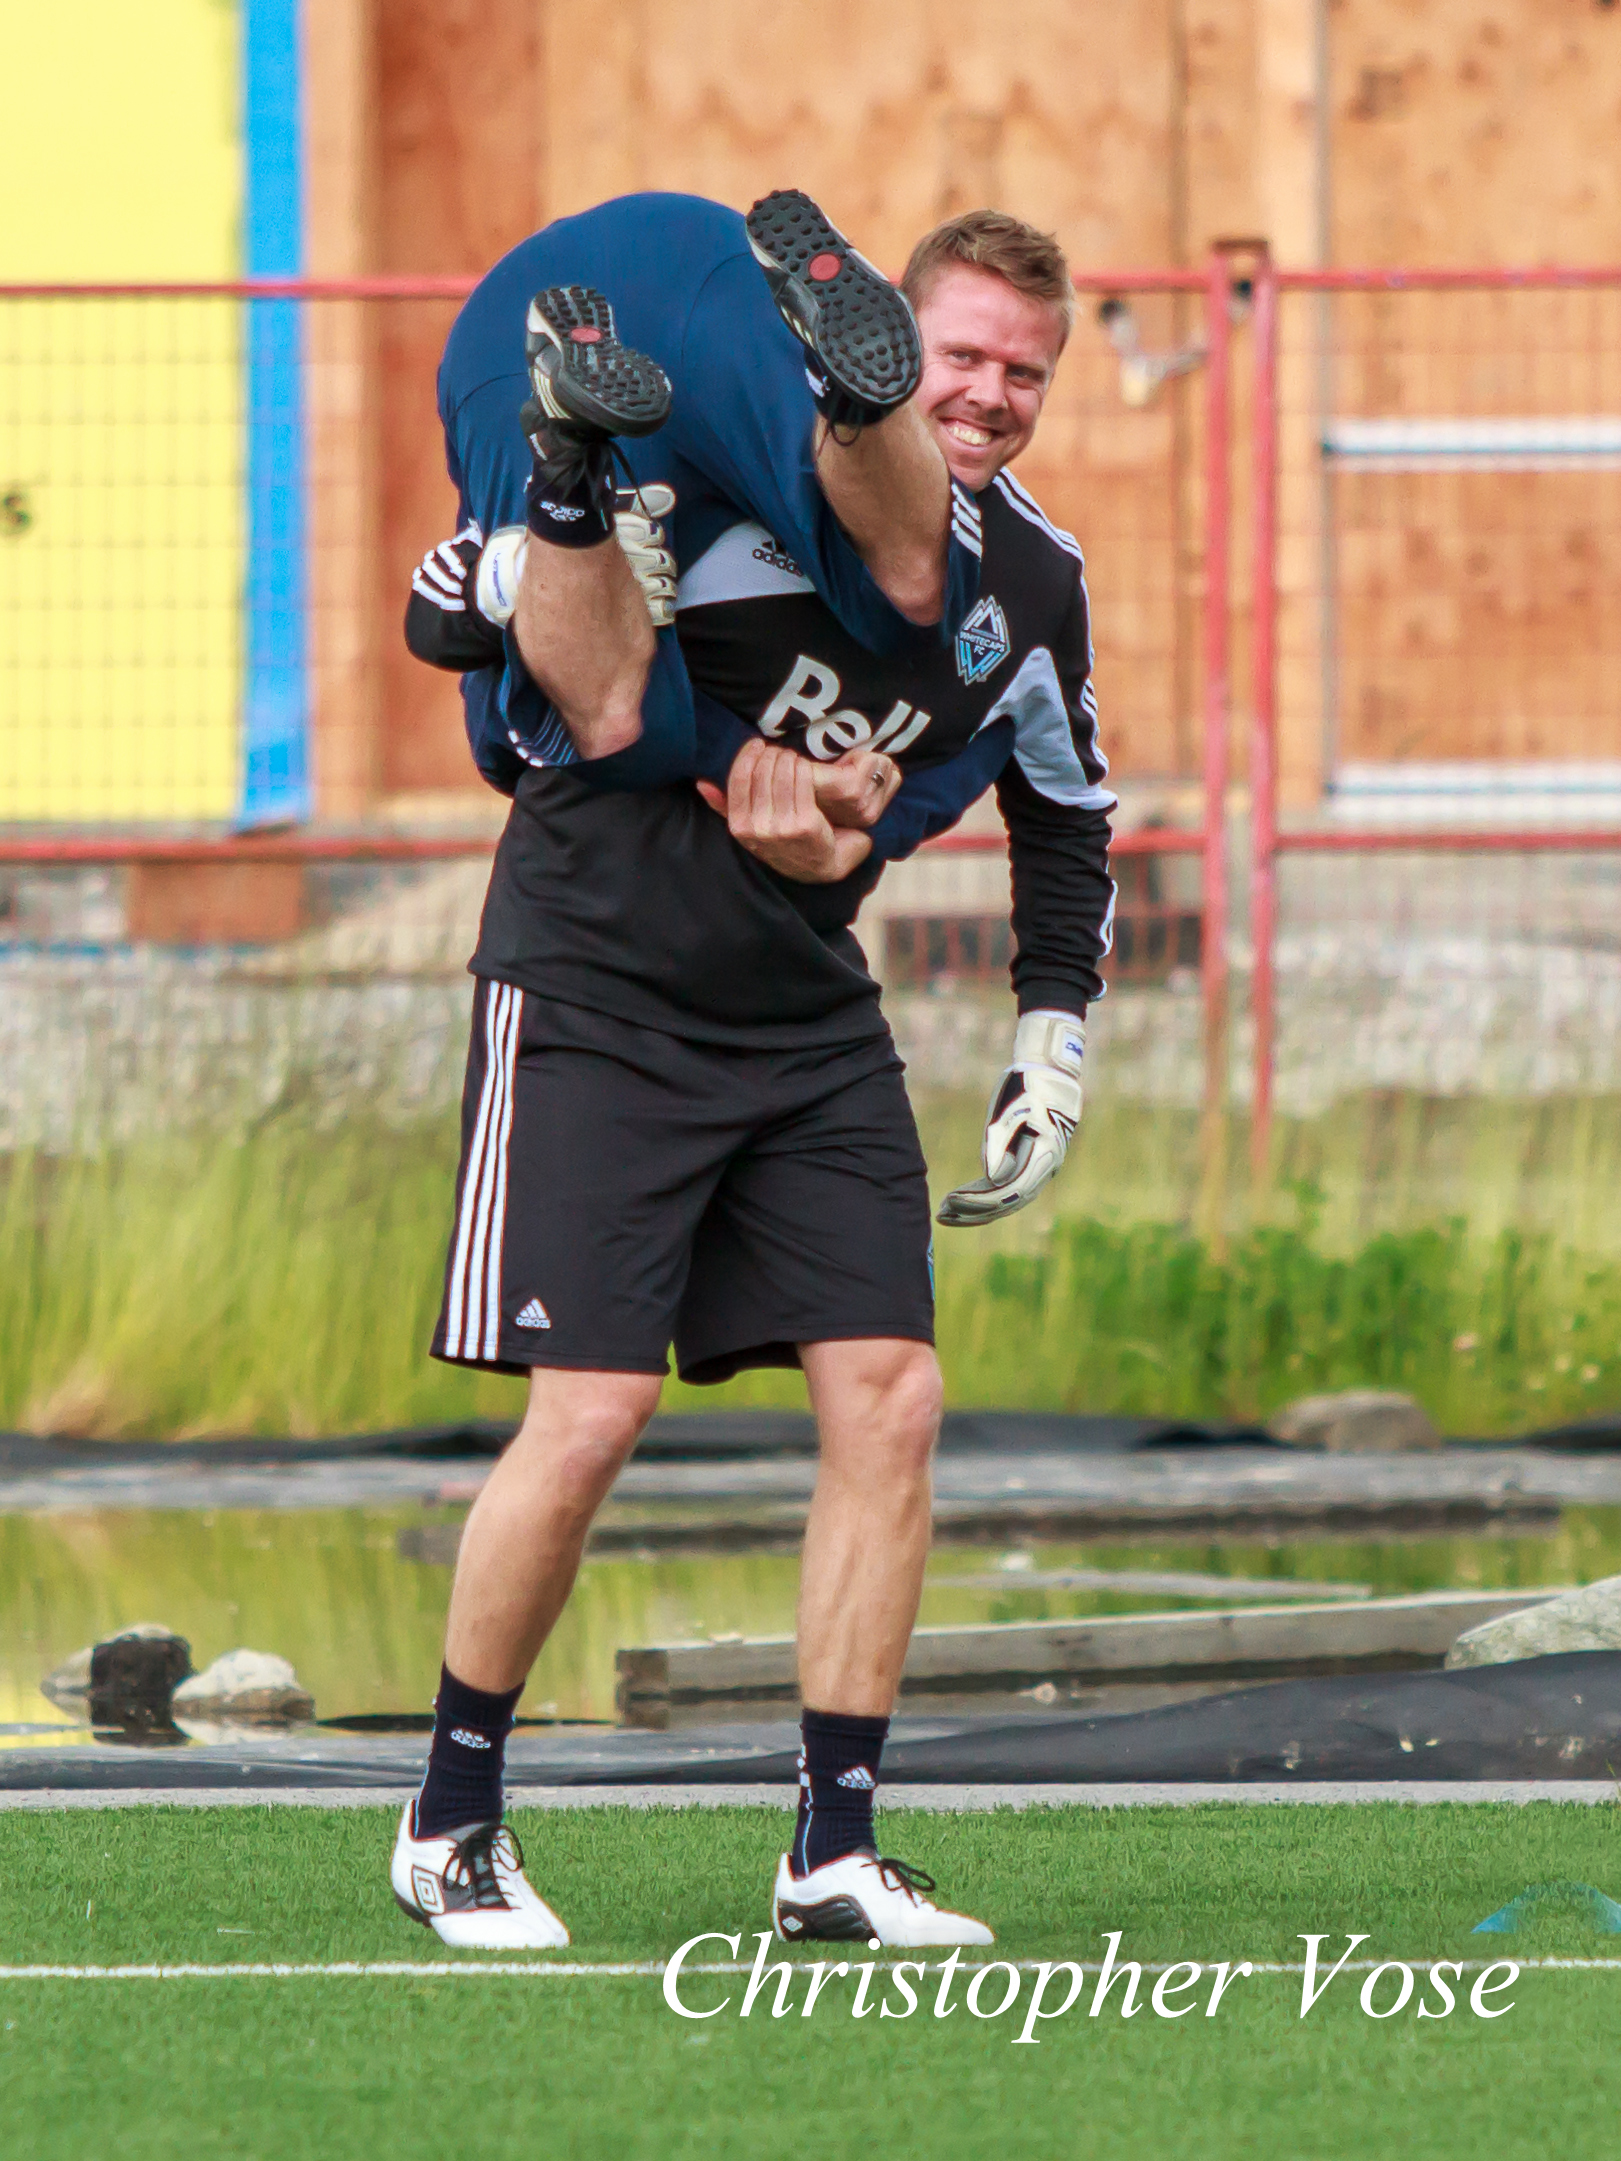 Marius Røvde prepares for his 40th birthday by carrying Vancouver Whitecaps FC physiotherapist Graeme Poole around the pitch at the Burnaby Lake Sports Complex on 14 June 2012.